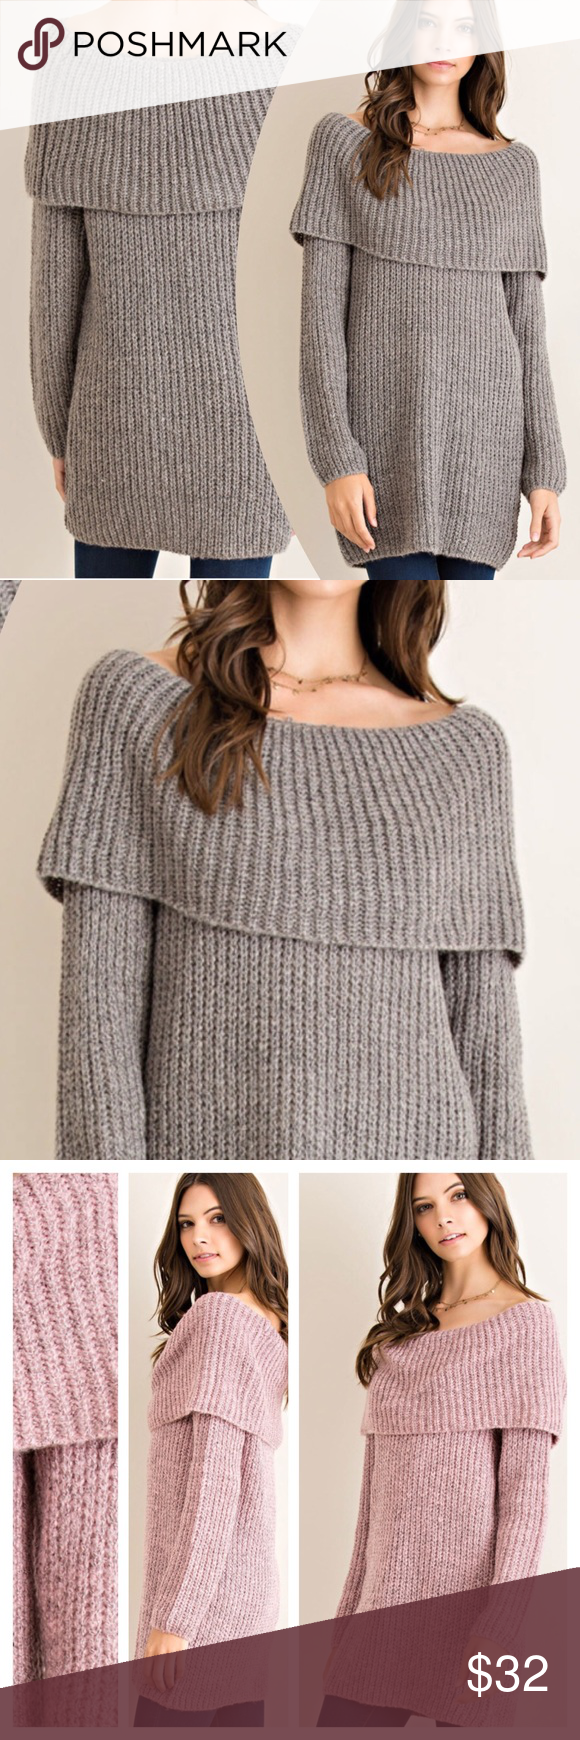 FOLDOVER RIBBED SWEATER A staple for the cooler months! Trendy fold over neck, ribbed material, 70% acrylic/30% polyester. Non sheer, knit, lightweight. IN CHARCOAL. ROSE AND TAUPE AVAILABLE IN SEPARATE LISTINGS. Measurements upon request. tla2 Sweaters Crew & Scoop Necks